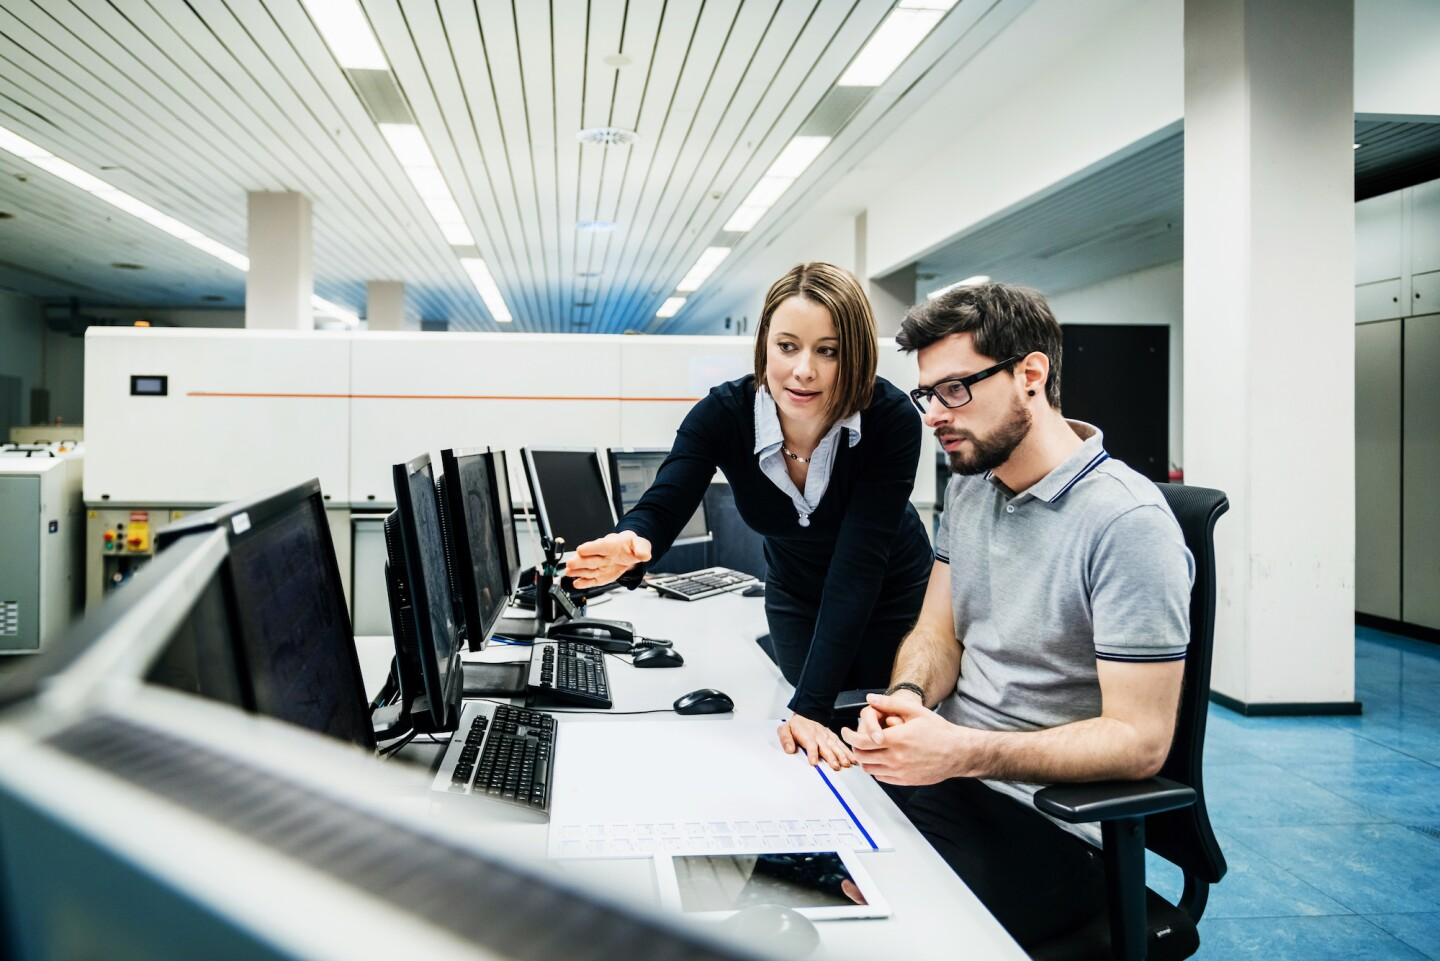 Operations Manager Working With Engineer At Computer